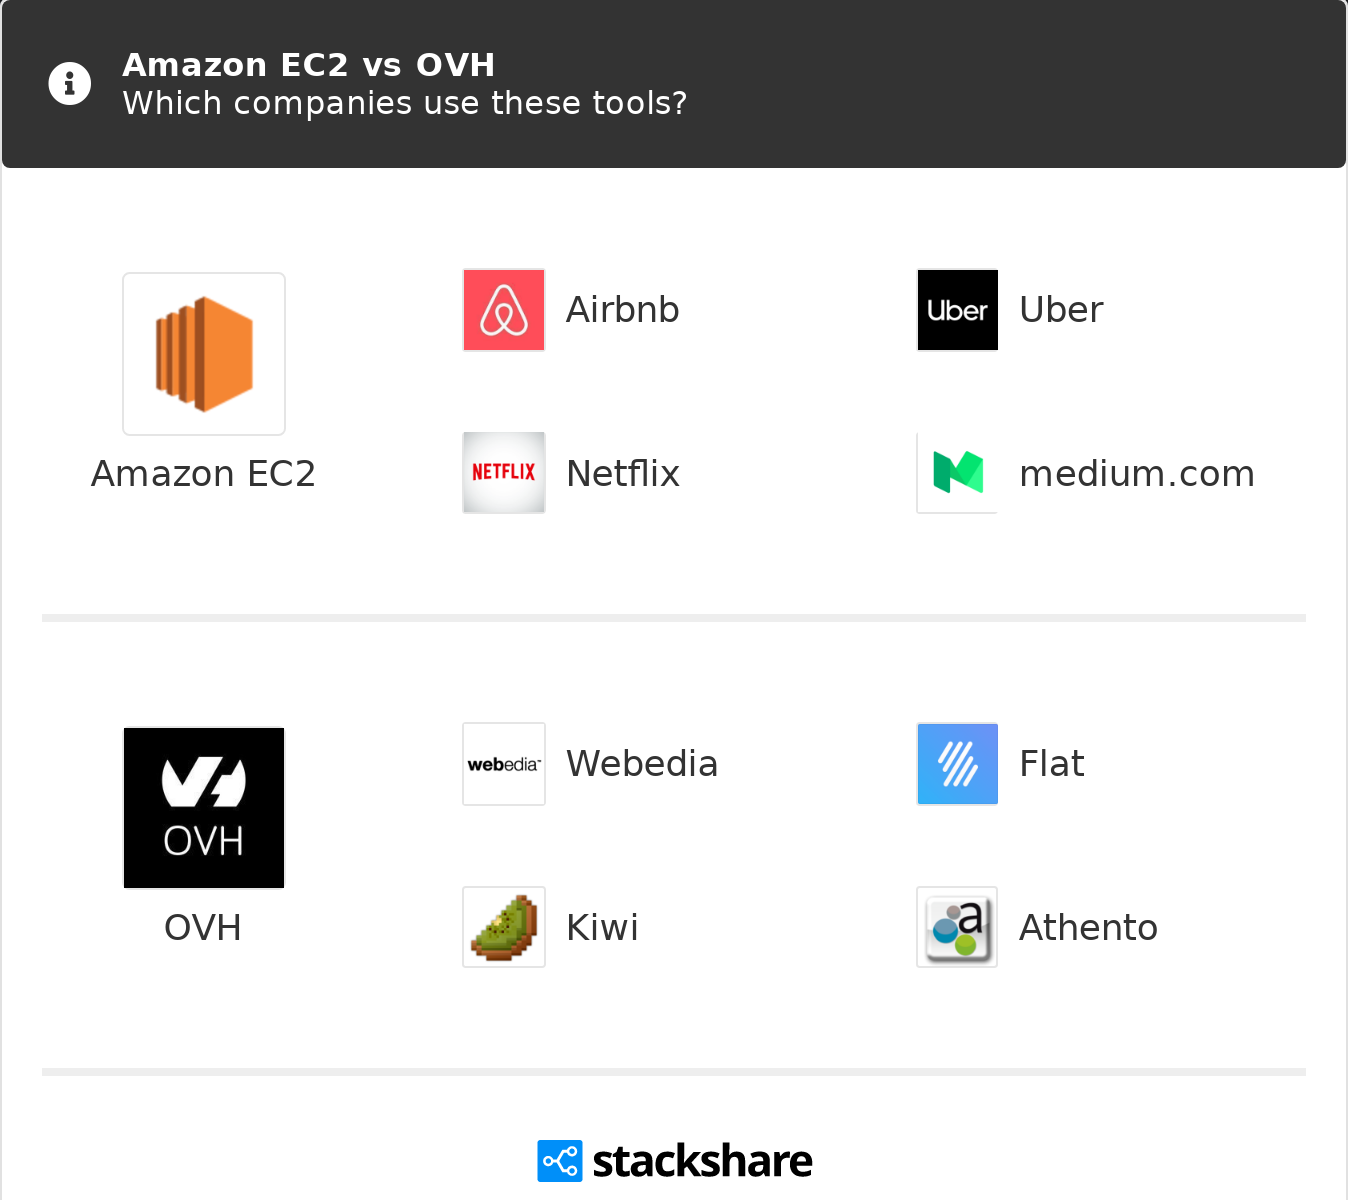 Amazon EC2 vs OVH | What are the differences?